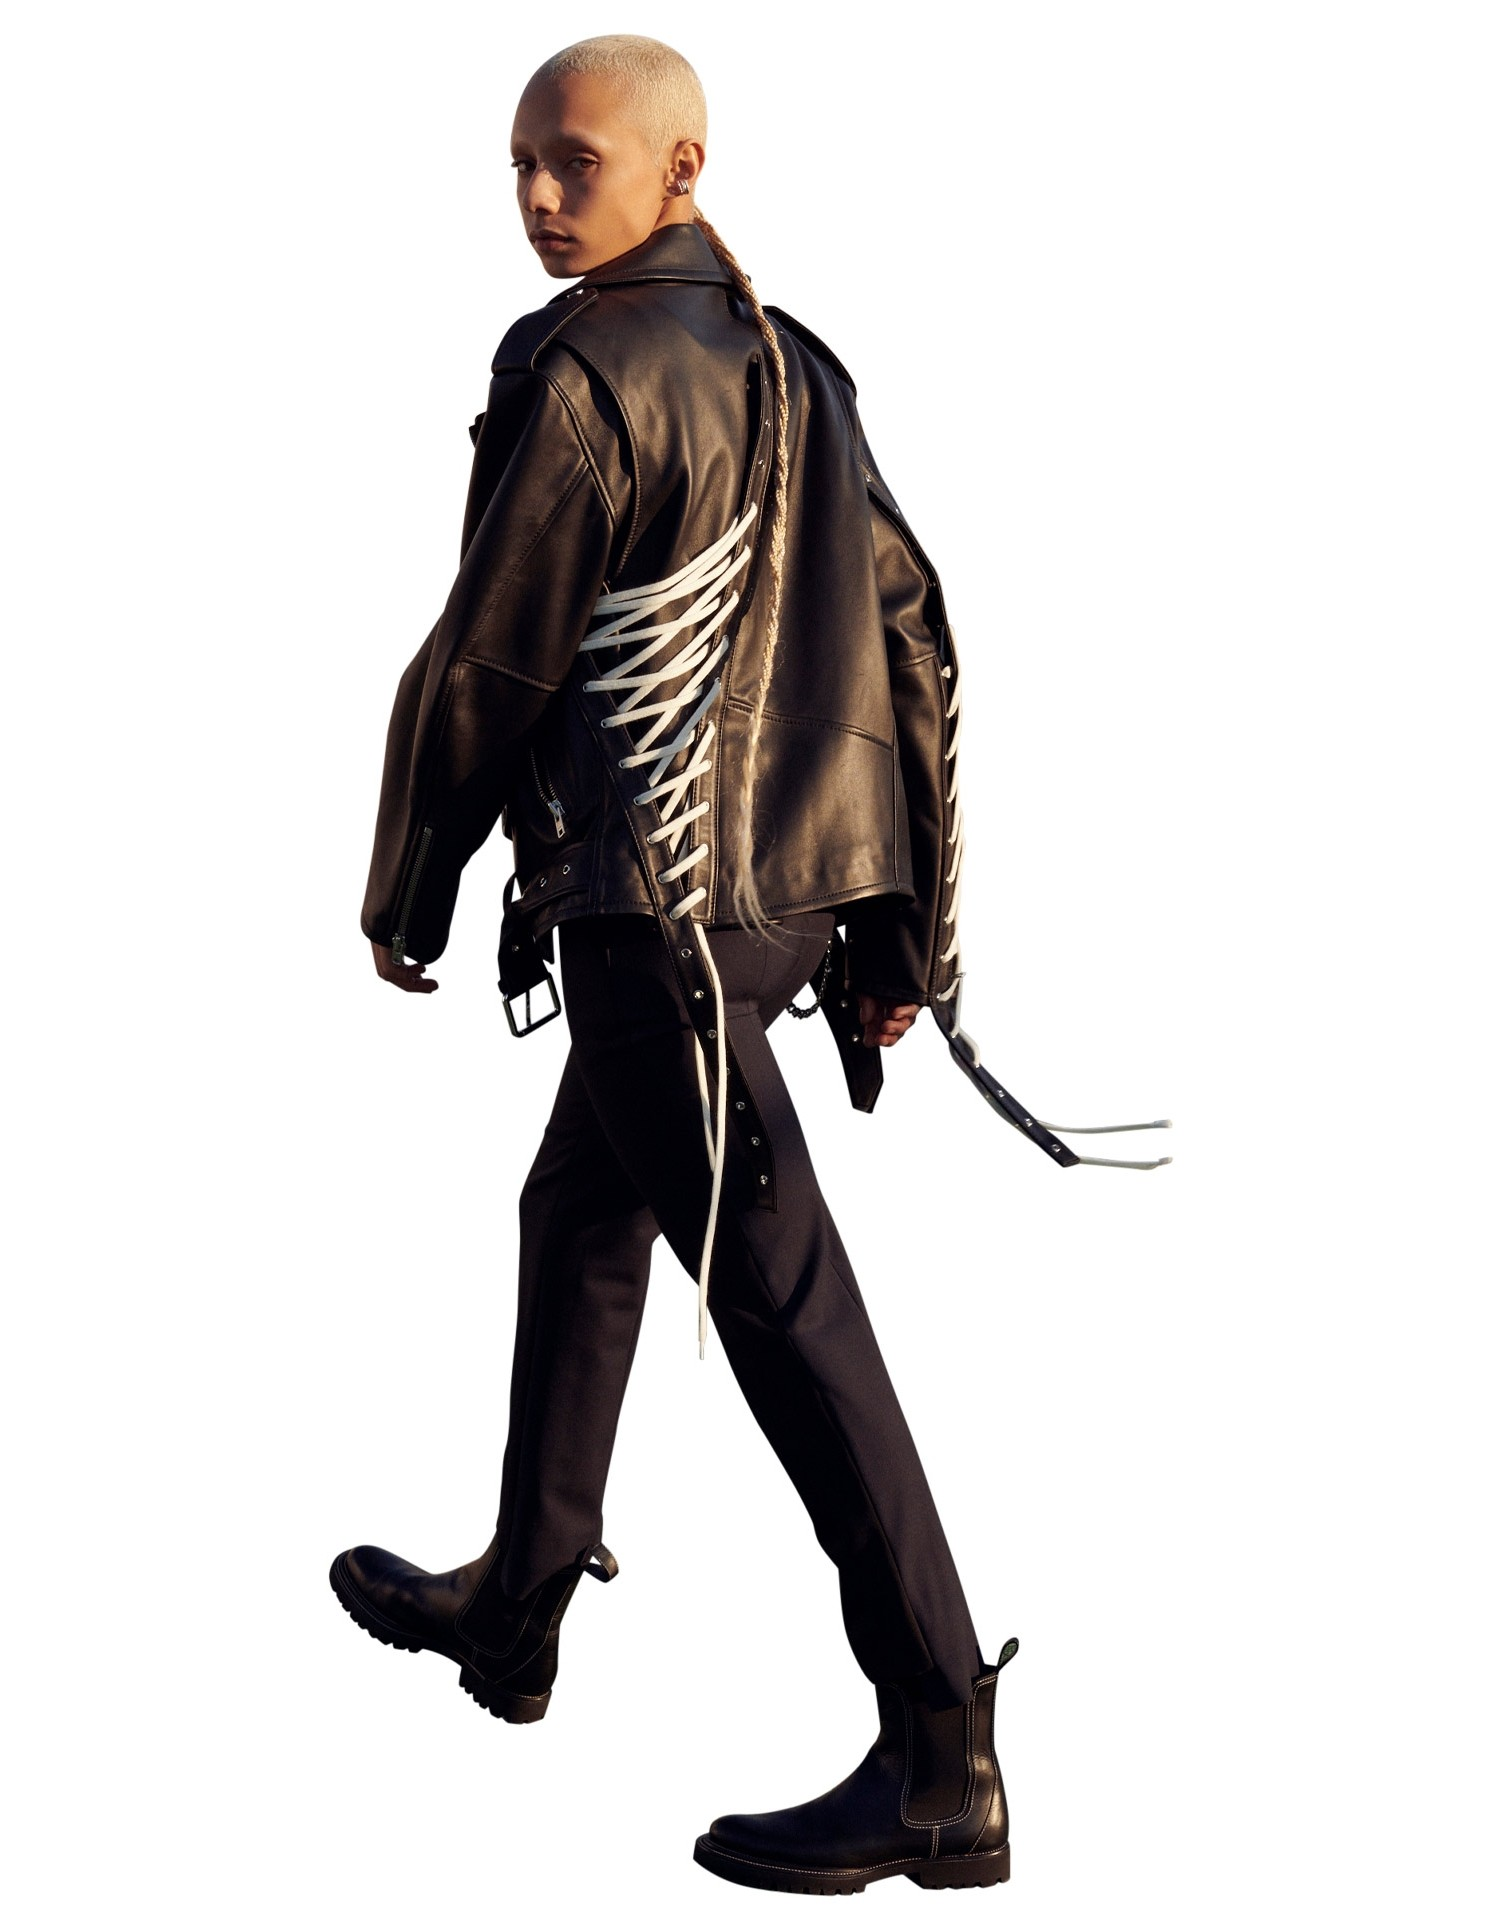 MONSE Lace Up Leather Motorcycle Jacket in Black on Model Walking Back View